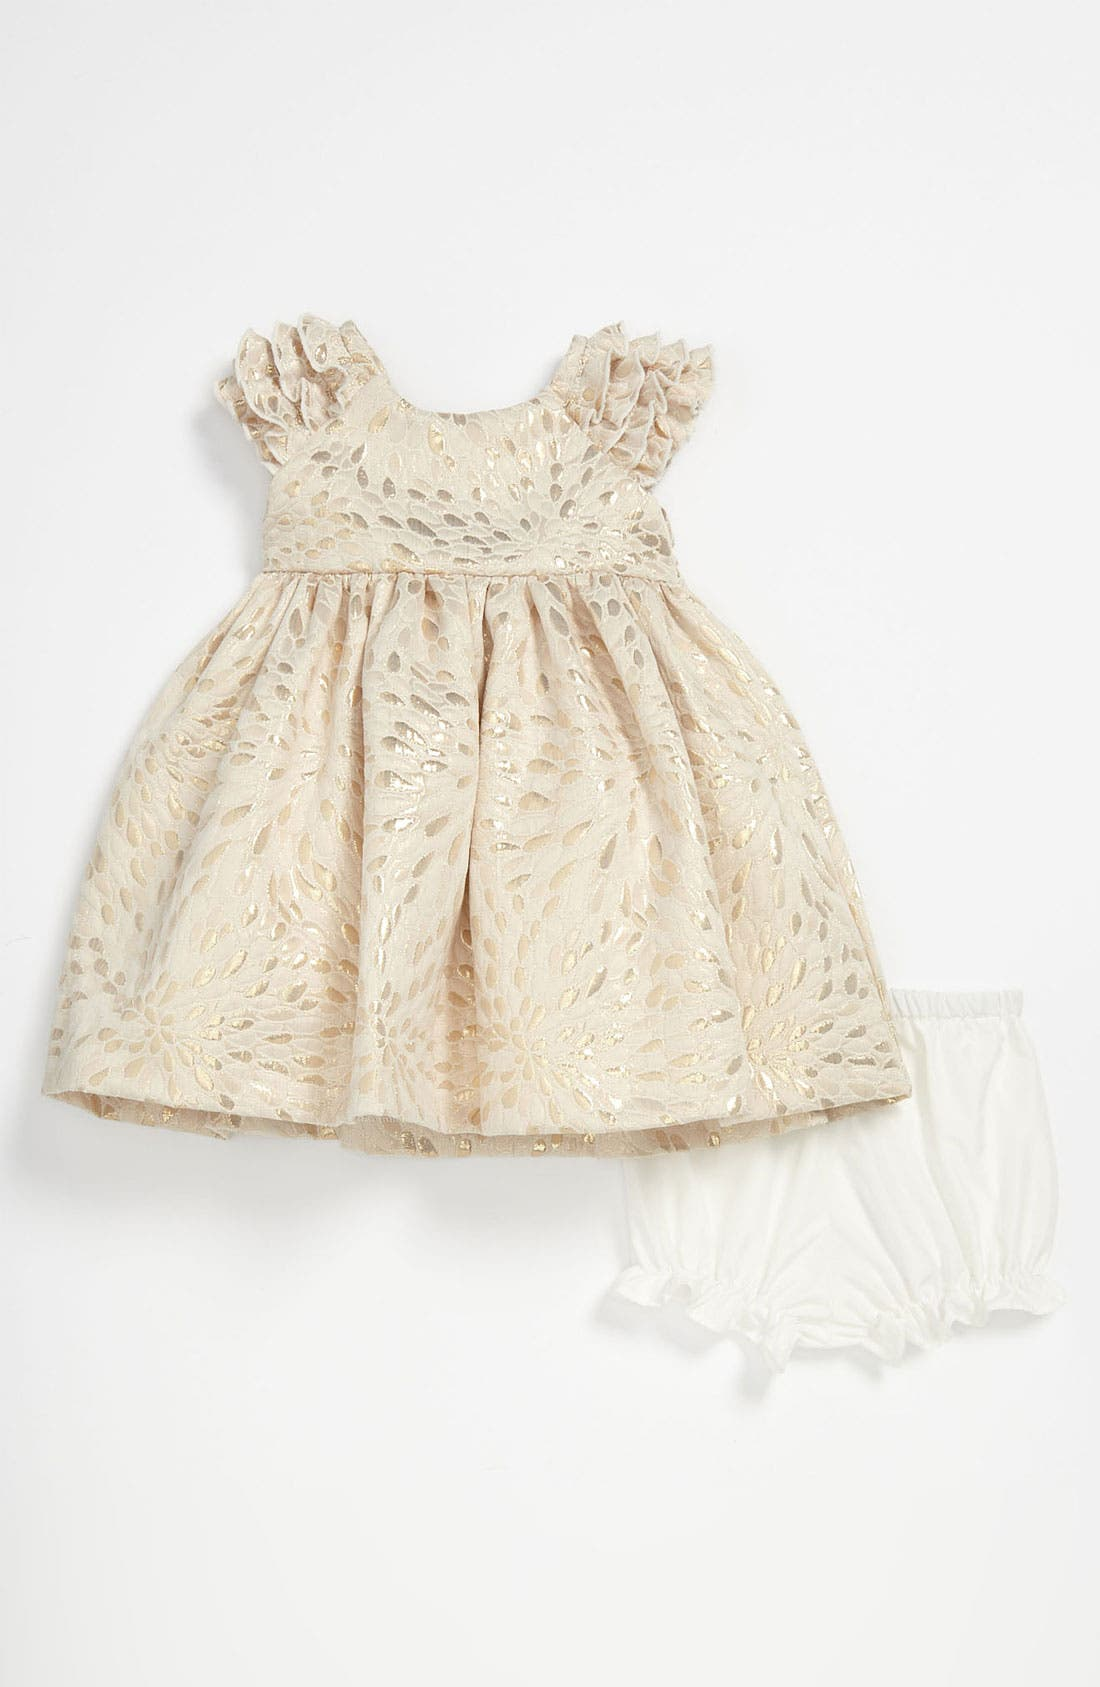 Main Image - Laura Ashley Brocade Dress & Bloomers (Infant)